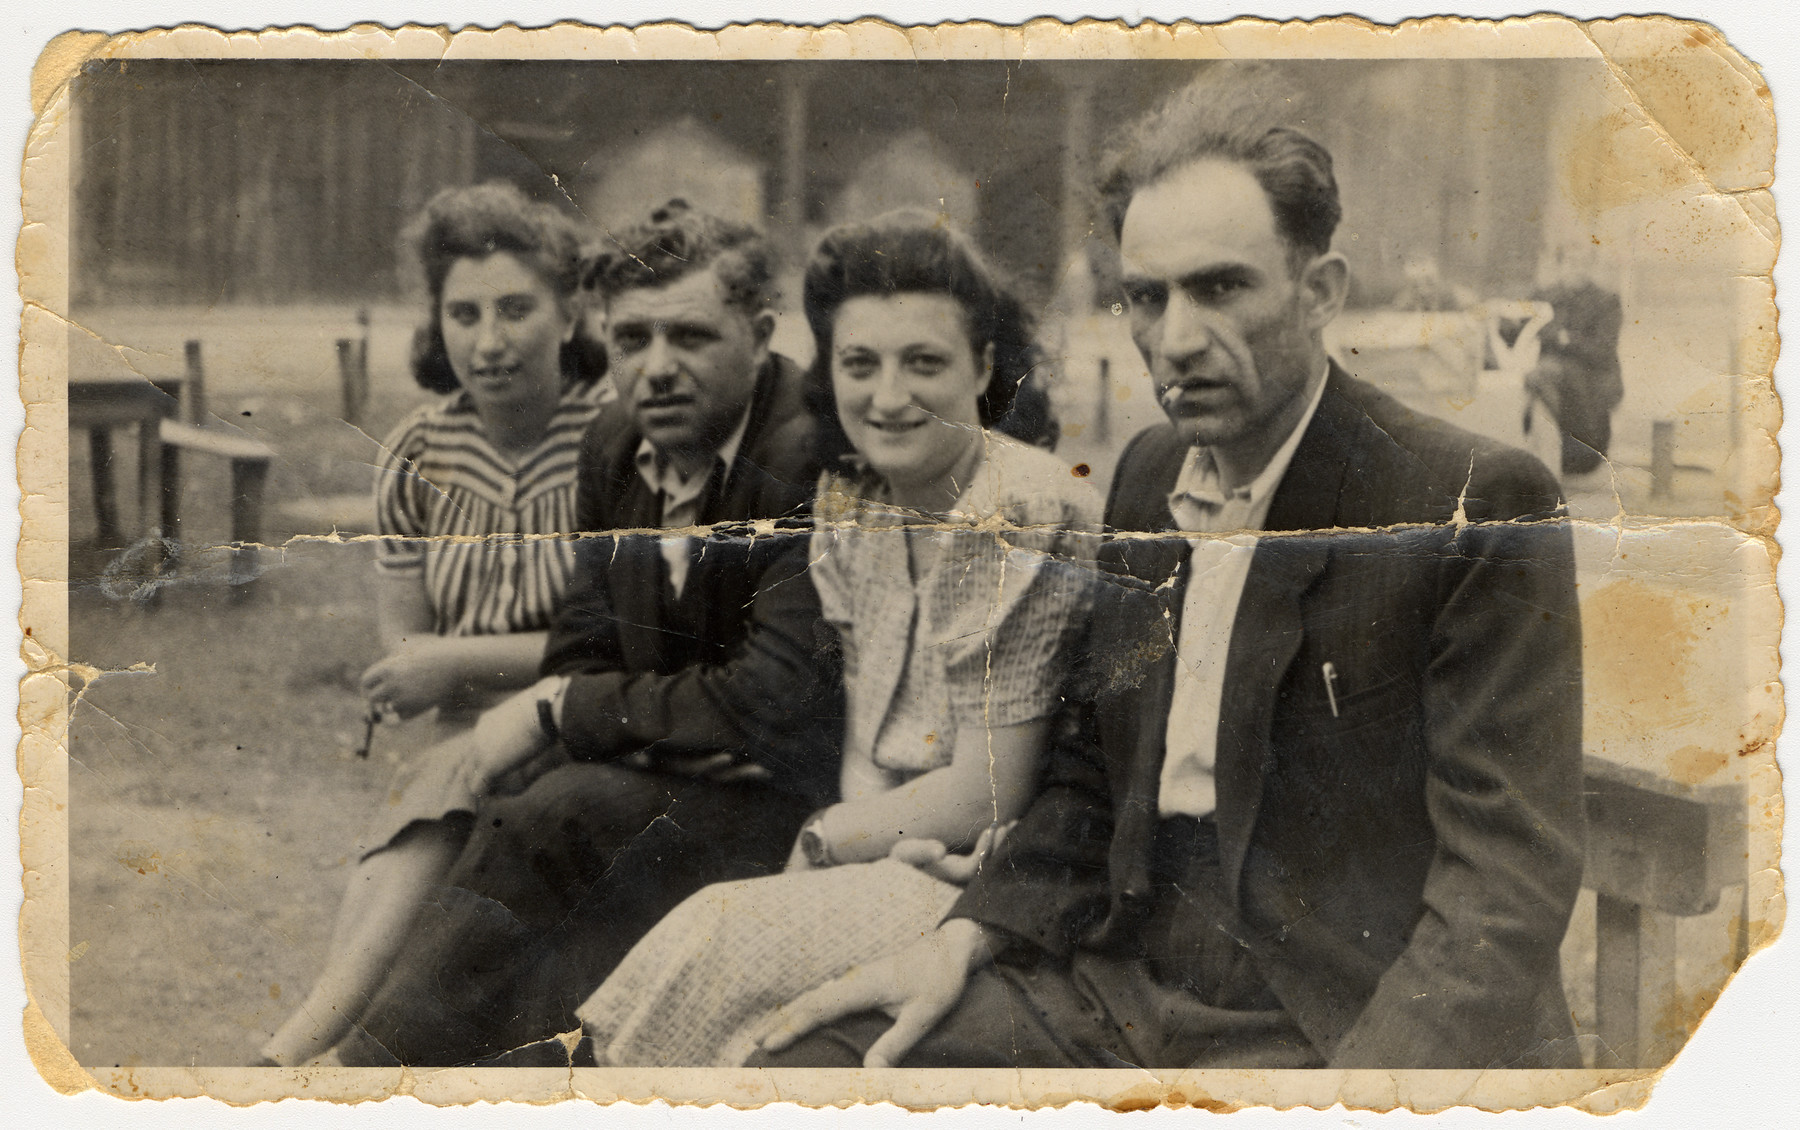 Portrait of two Jewish couples in the Deggendorf displaced persons' camp.  Pictured in the center are Moses and Mania Leinwand, and on the ends are Peila and Avrumchik Leitner.